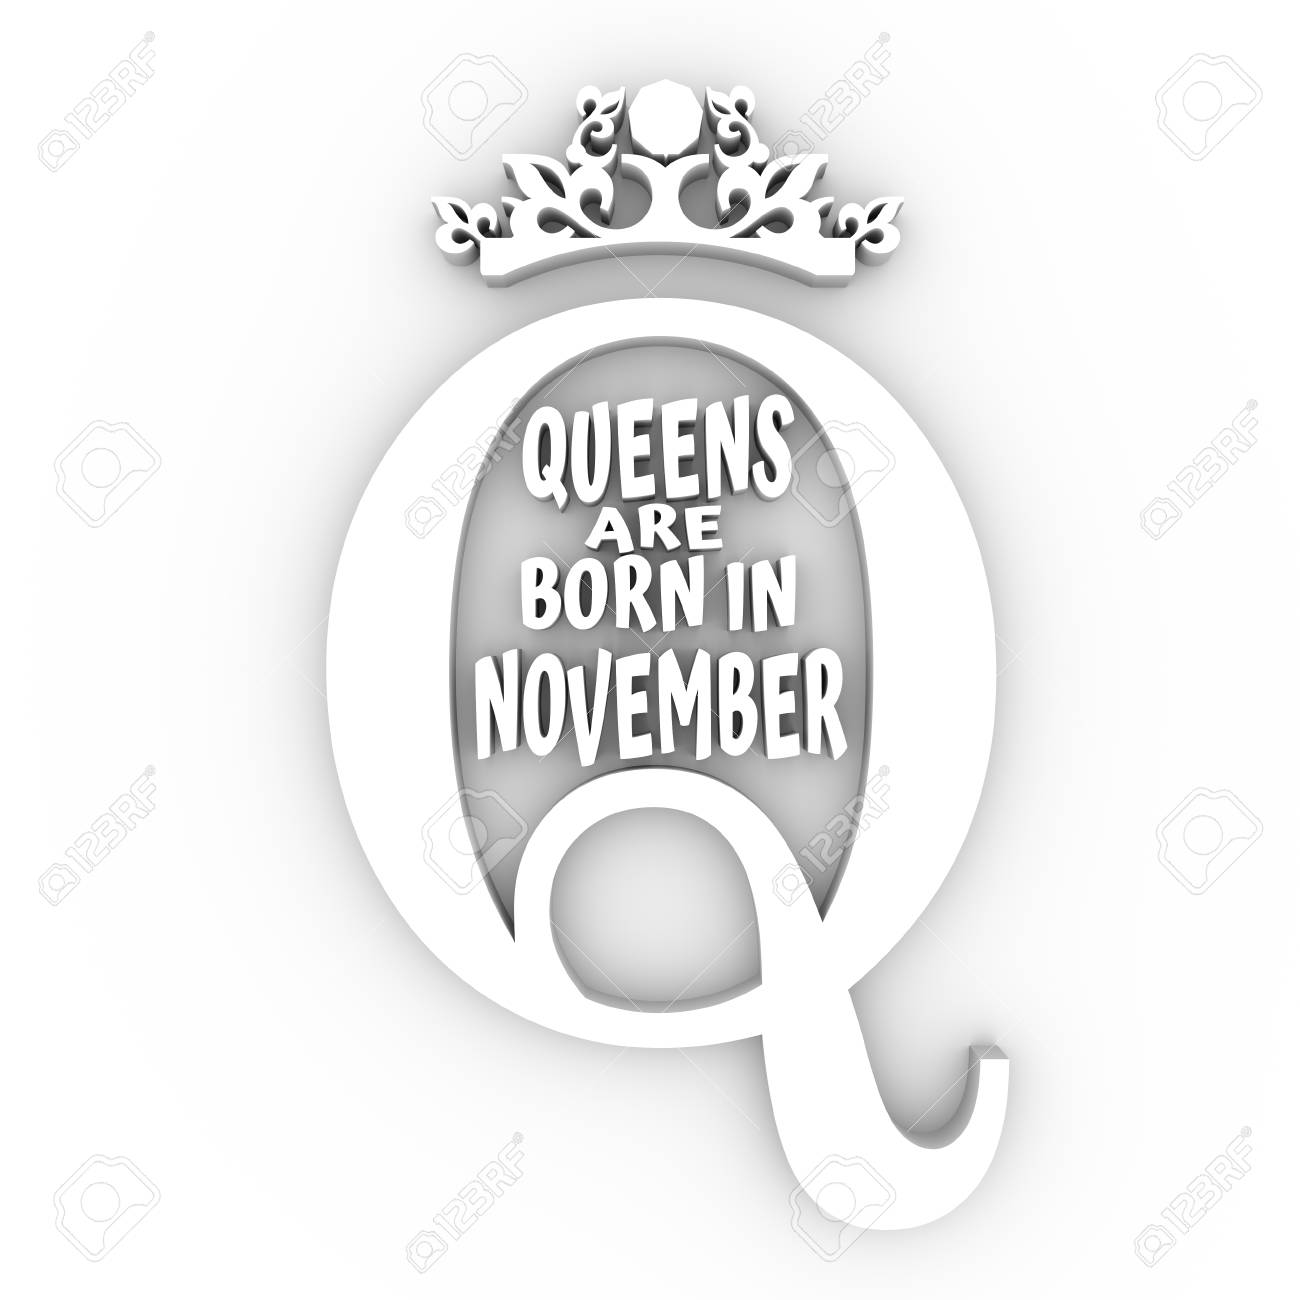 Vintage Queen Crown Silhouette. Royal Emblem With Q Letter. Queens ...